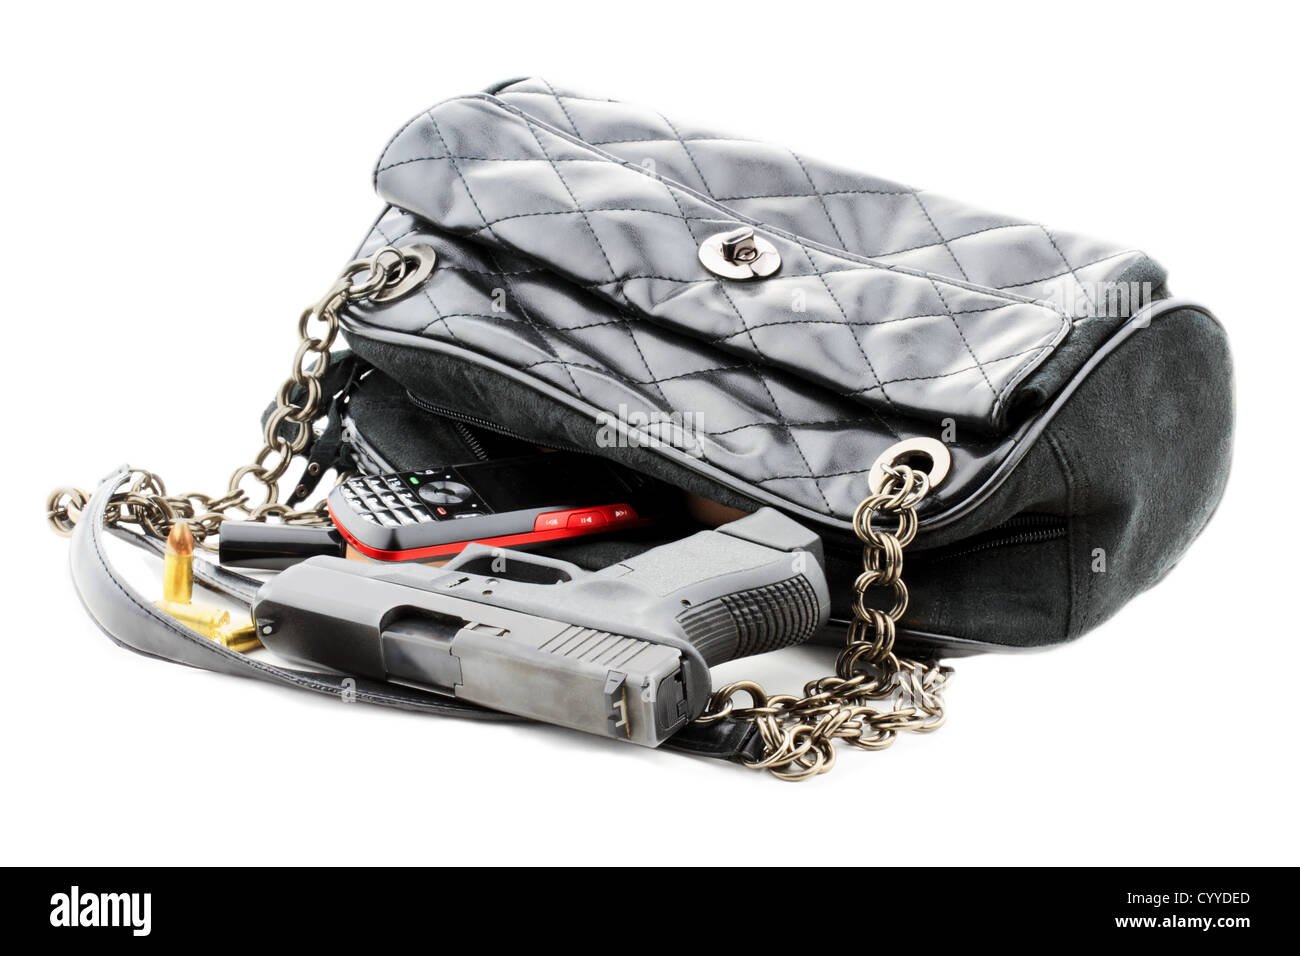 Carried concealed. Handgun and accessories falling from a woman's purse. Isolated on white with light shadow. - Stock Image